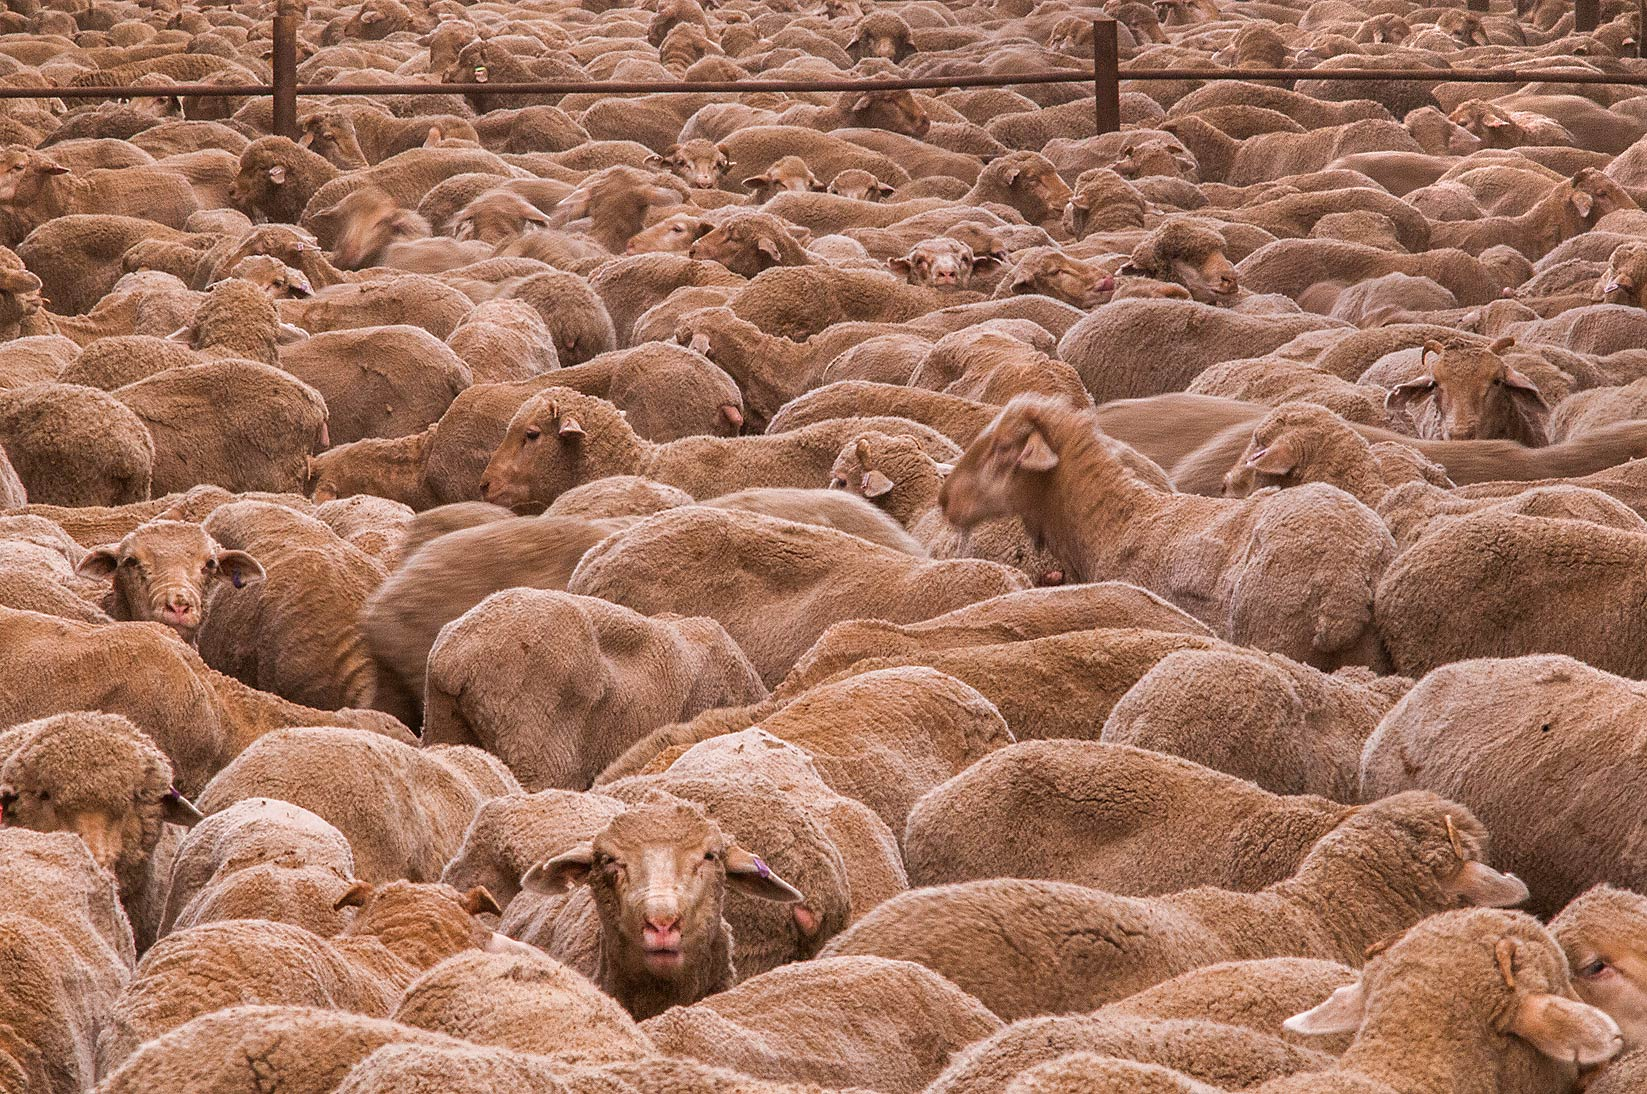 Sheep masses in overcrowded feedlot in Livestock Market, Abu Hamour area. Doha, Qatar